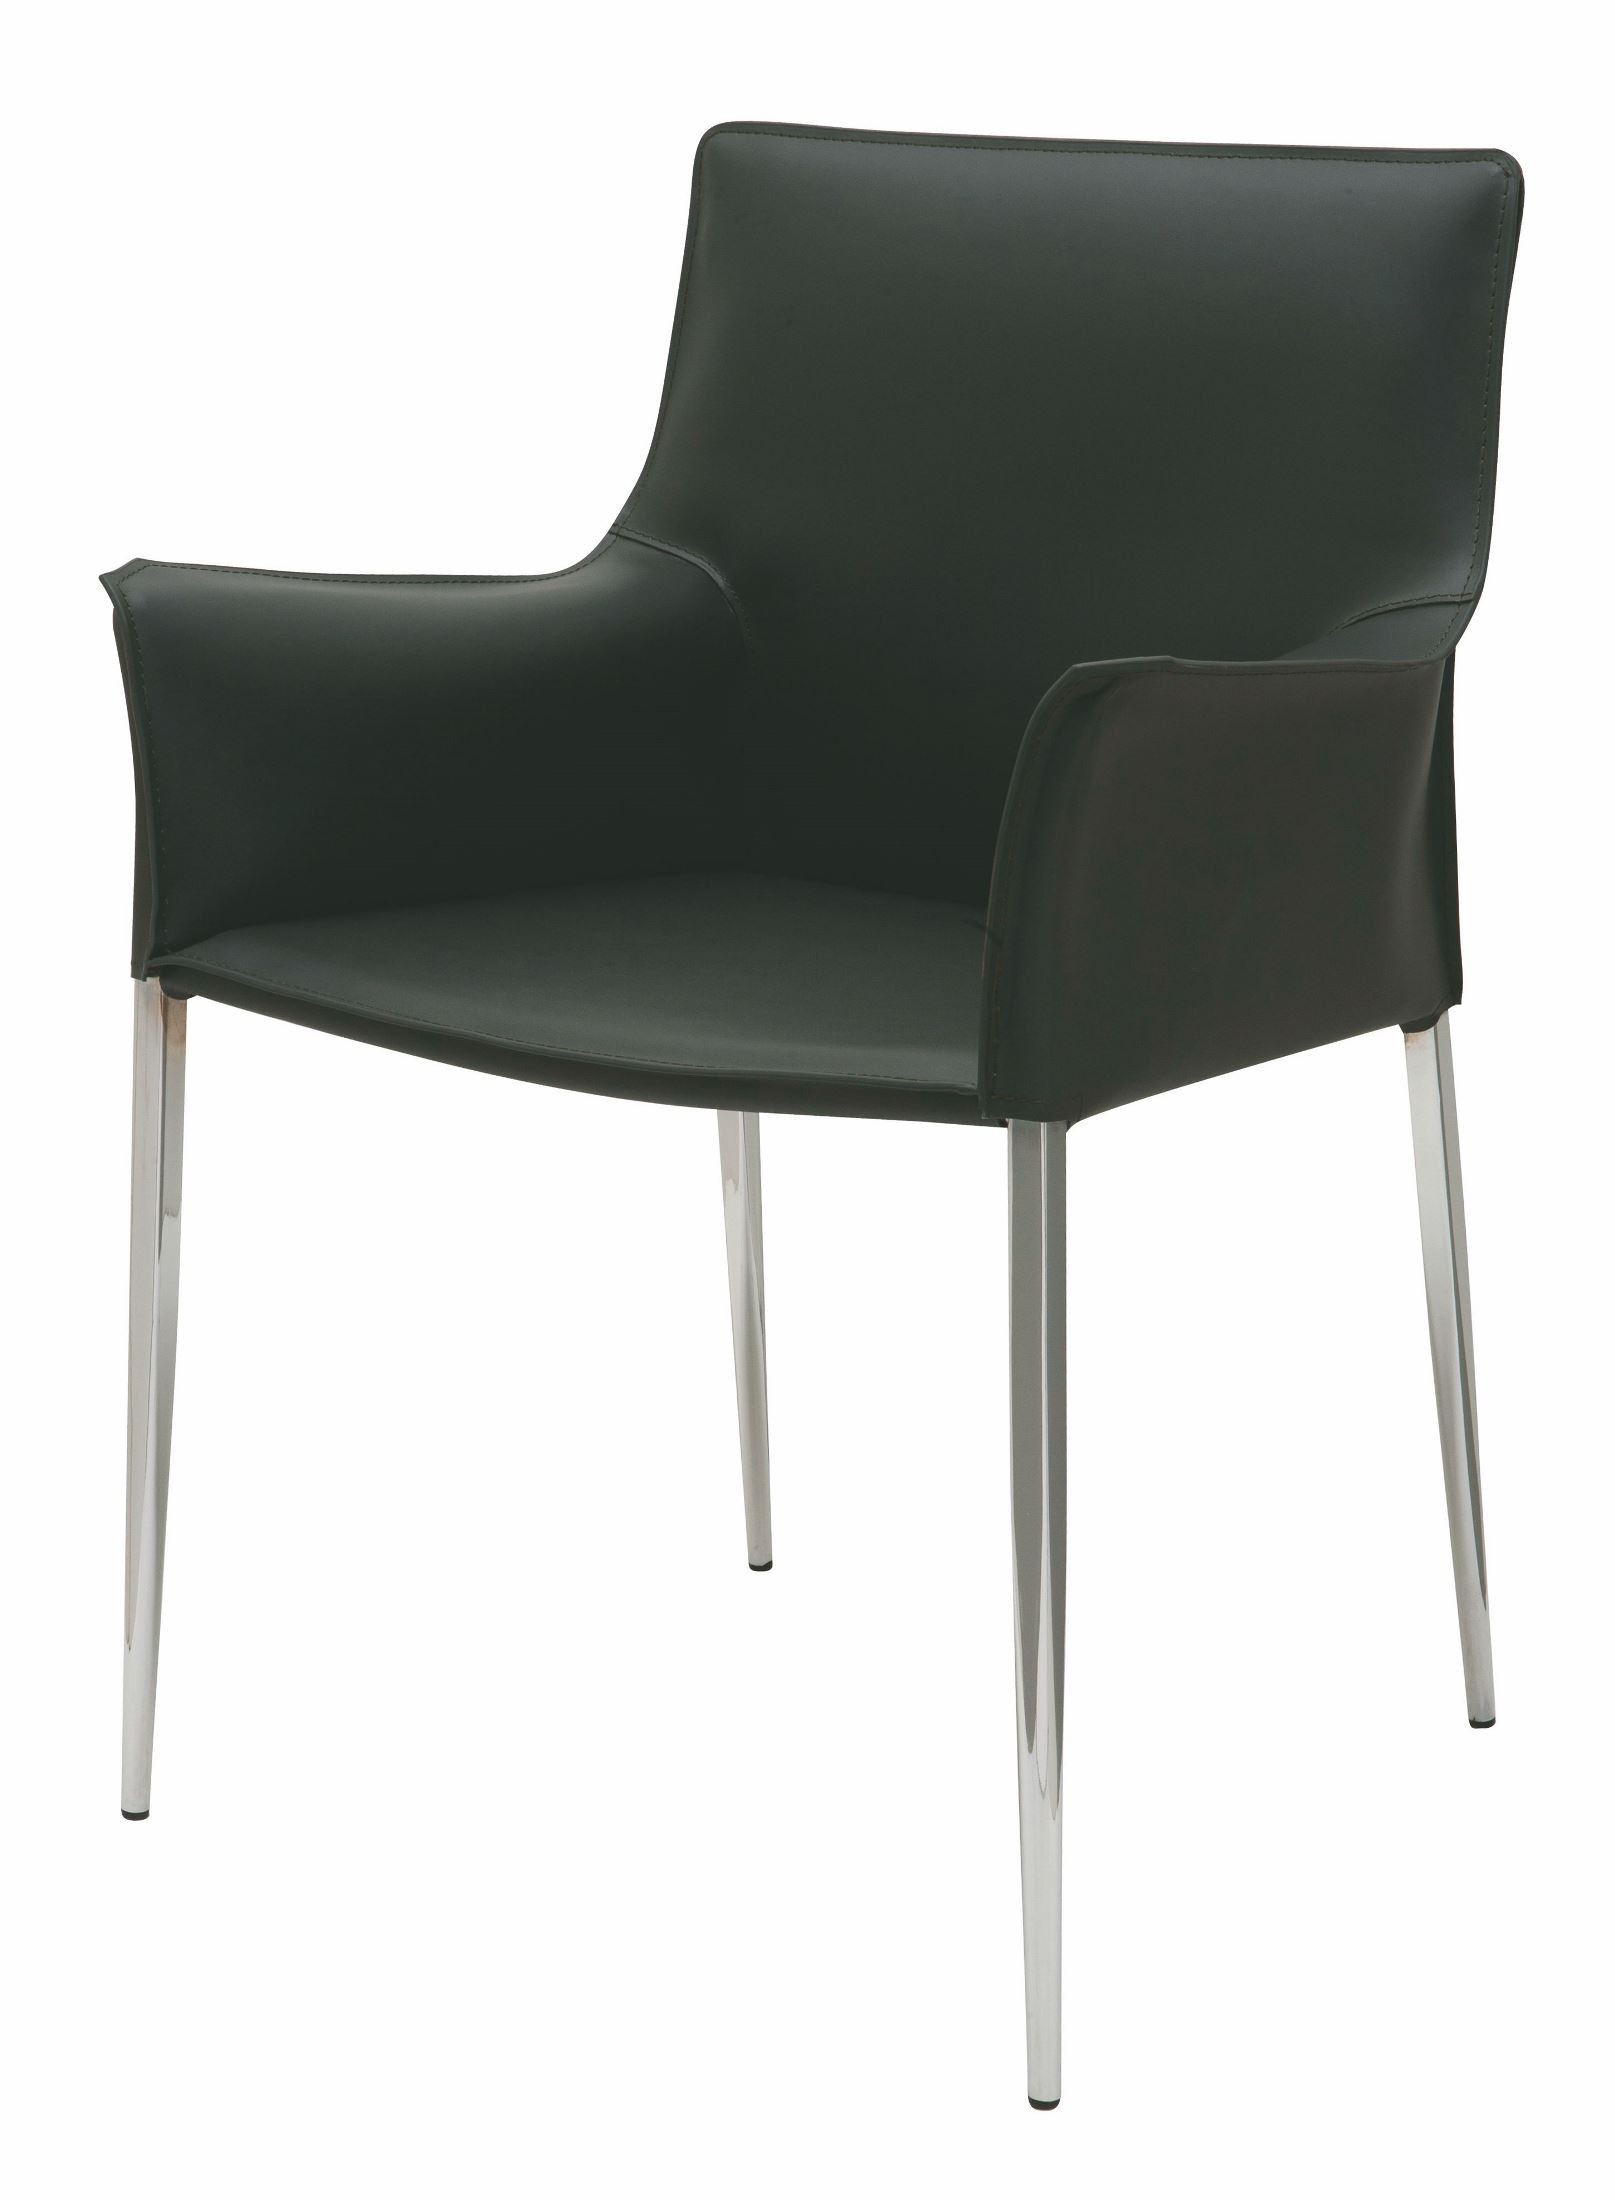 Ebony leather dining chairs perhaps shall